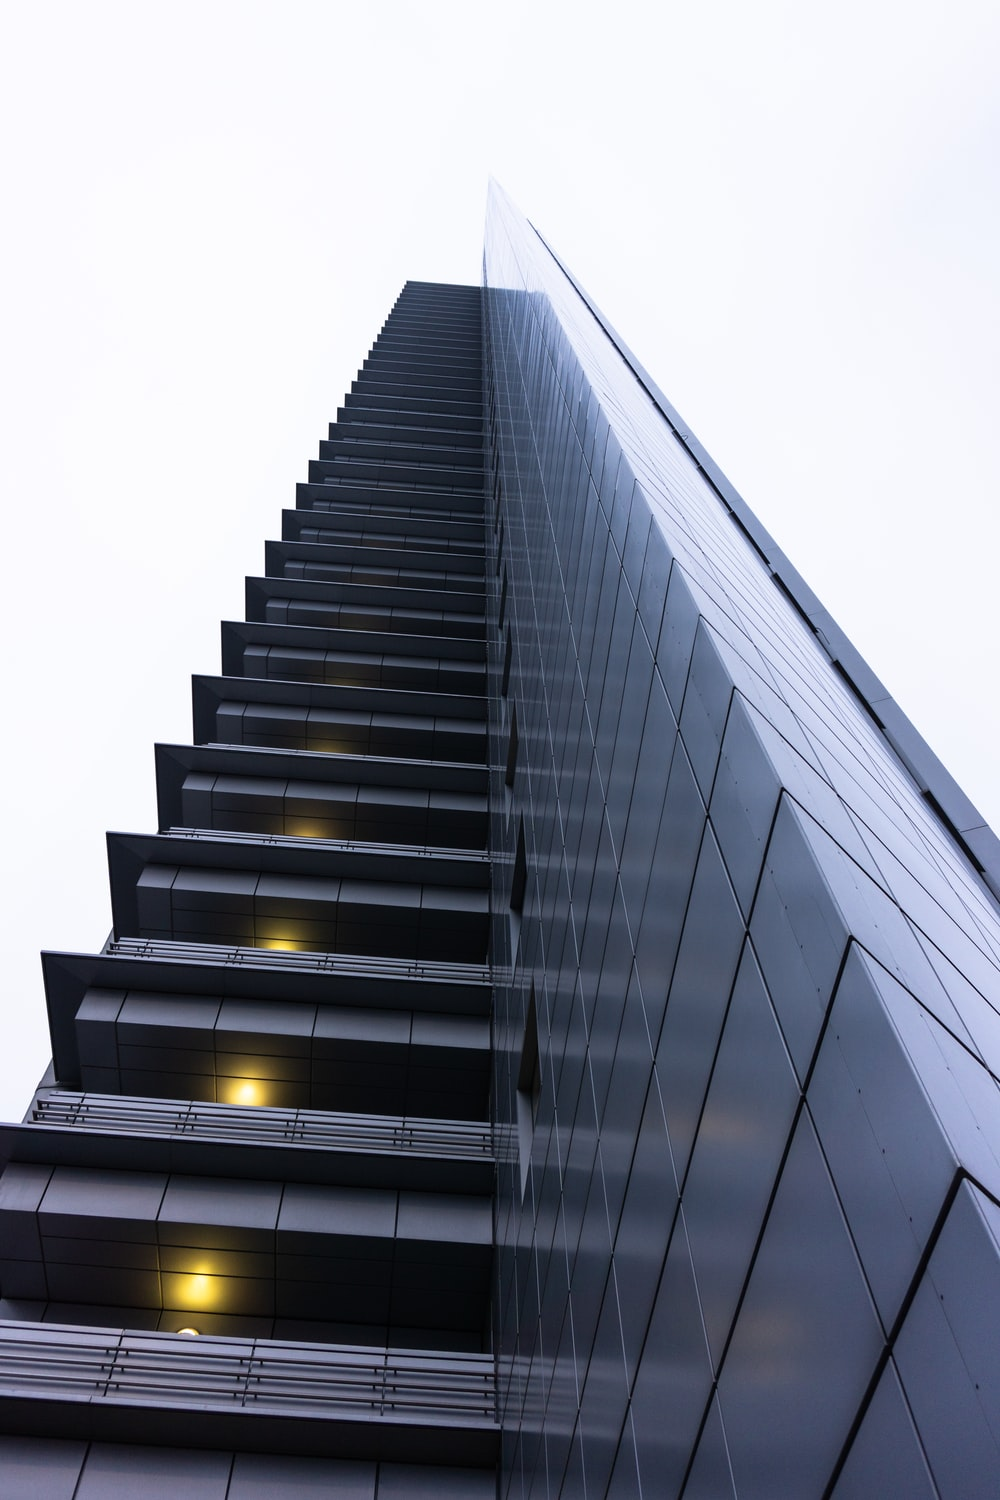 low angle photography of gray high rise building